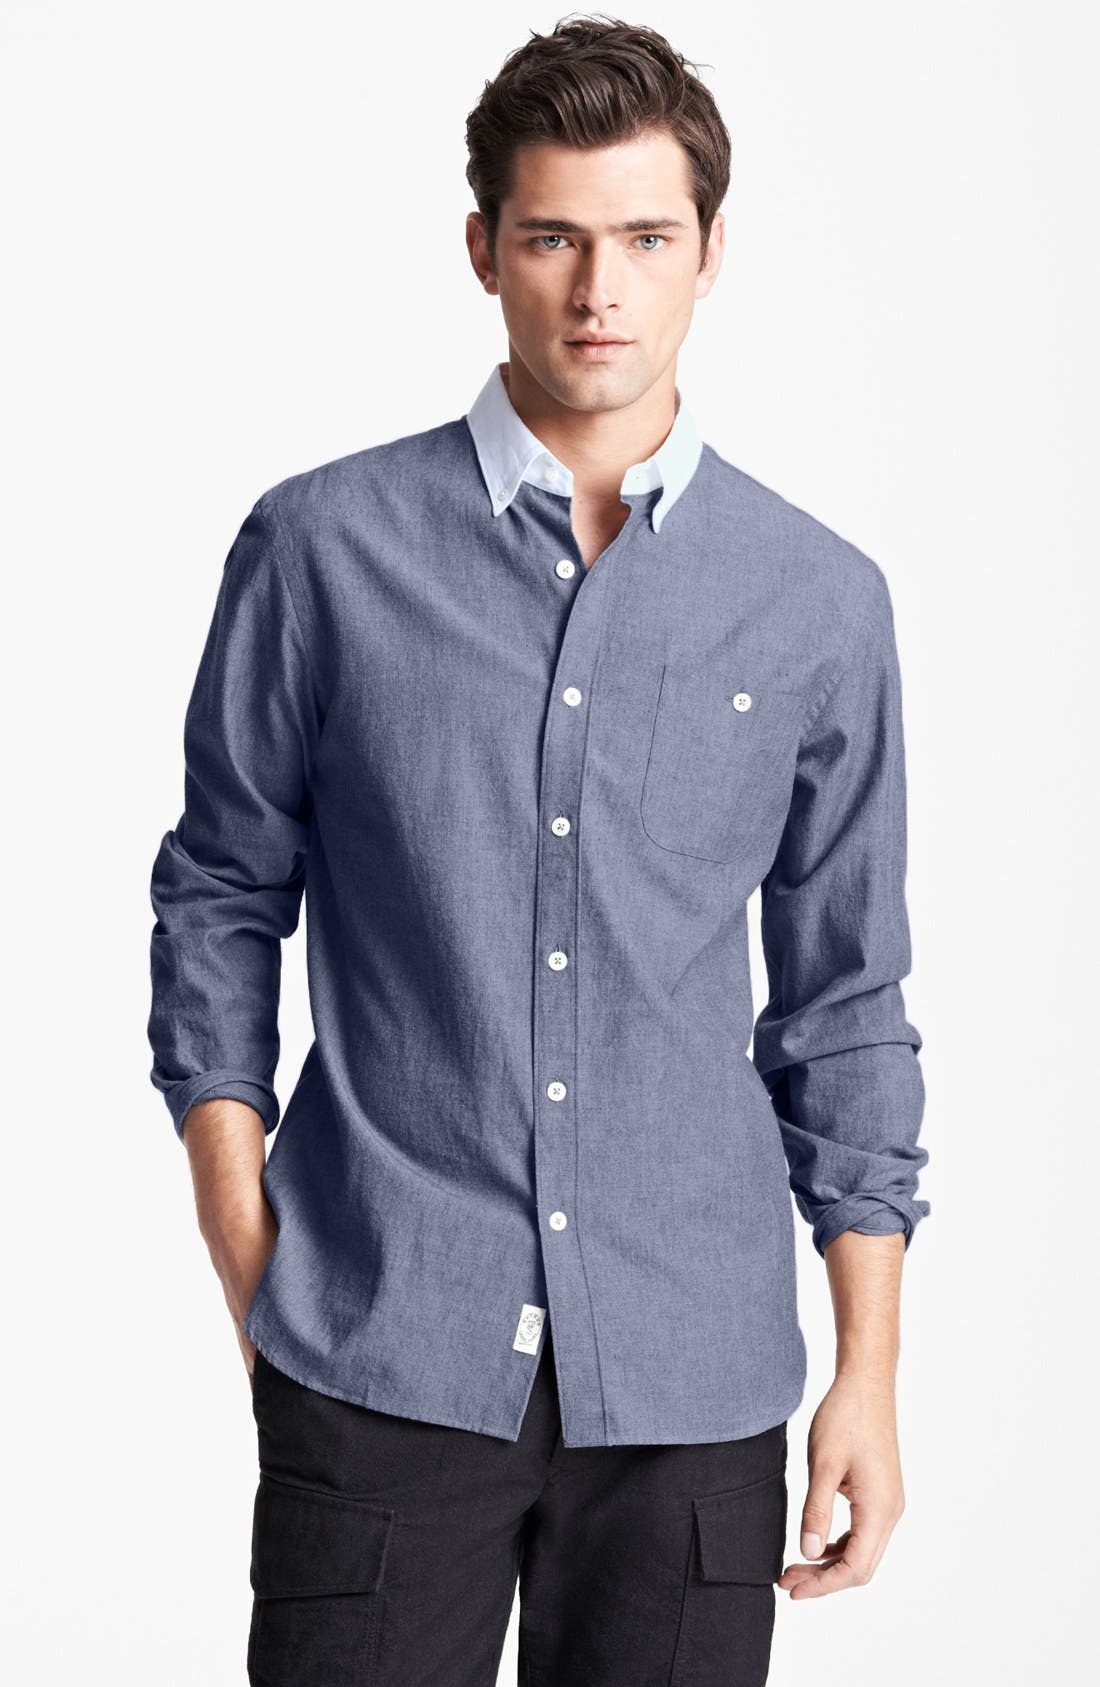 Alternate Image 1 Selected - Todd Snyder Chambray Sport Shirt with Contrast Collar